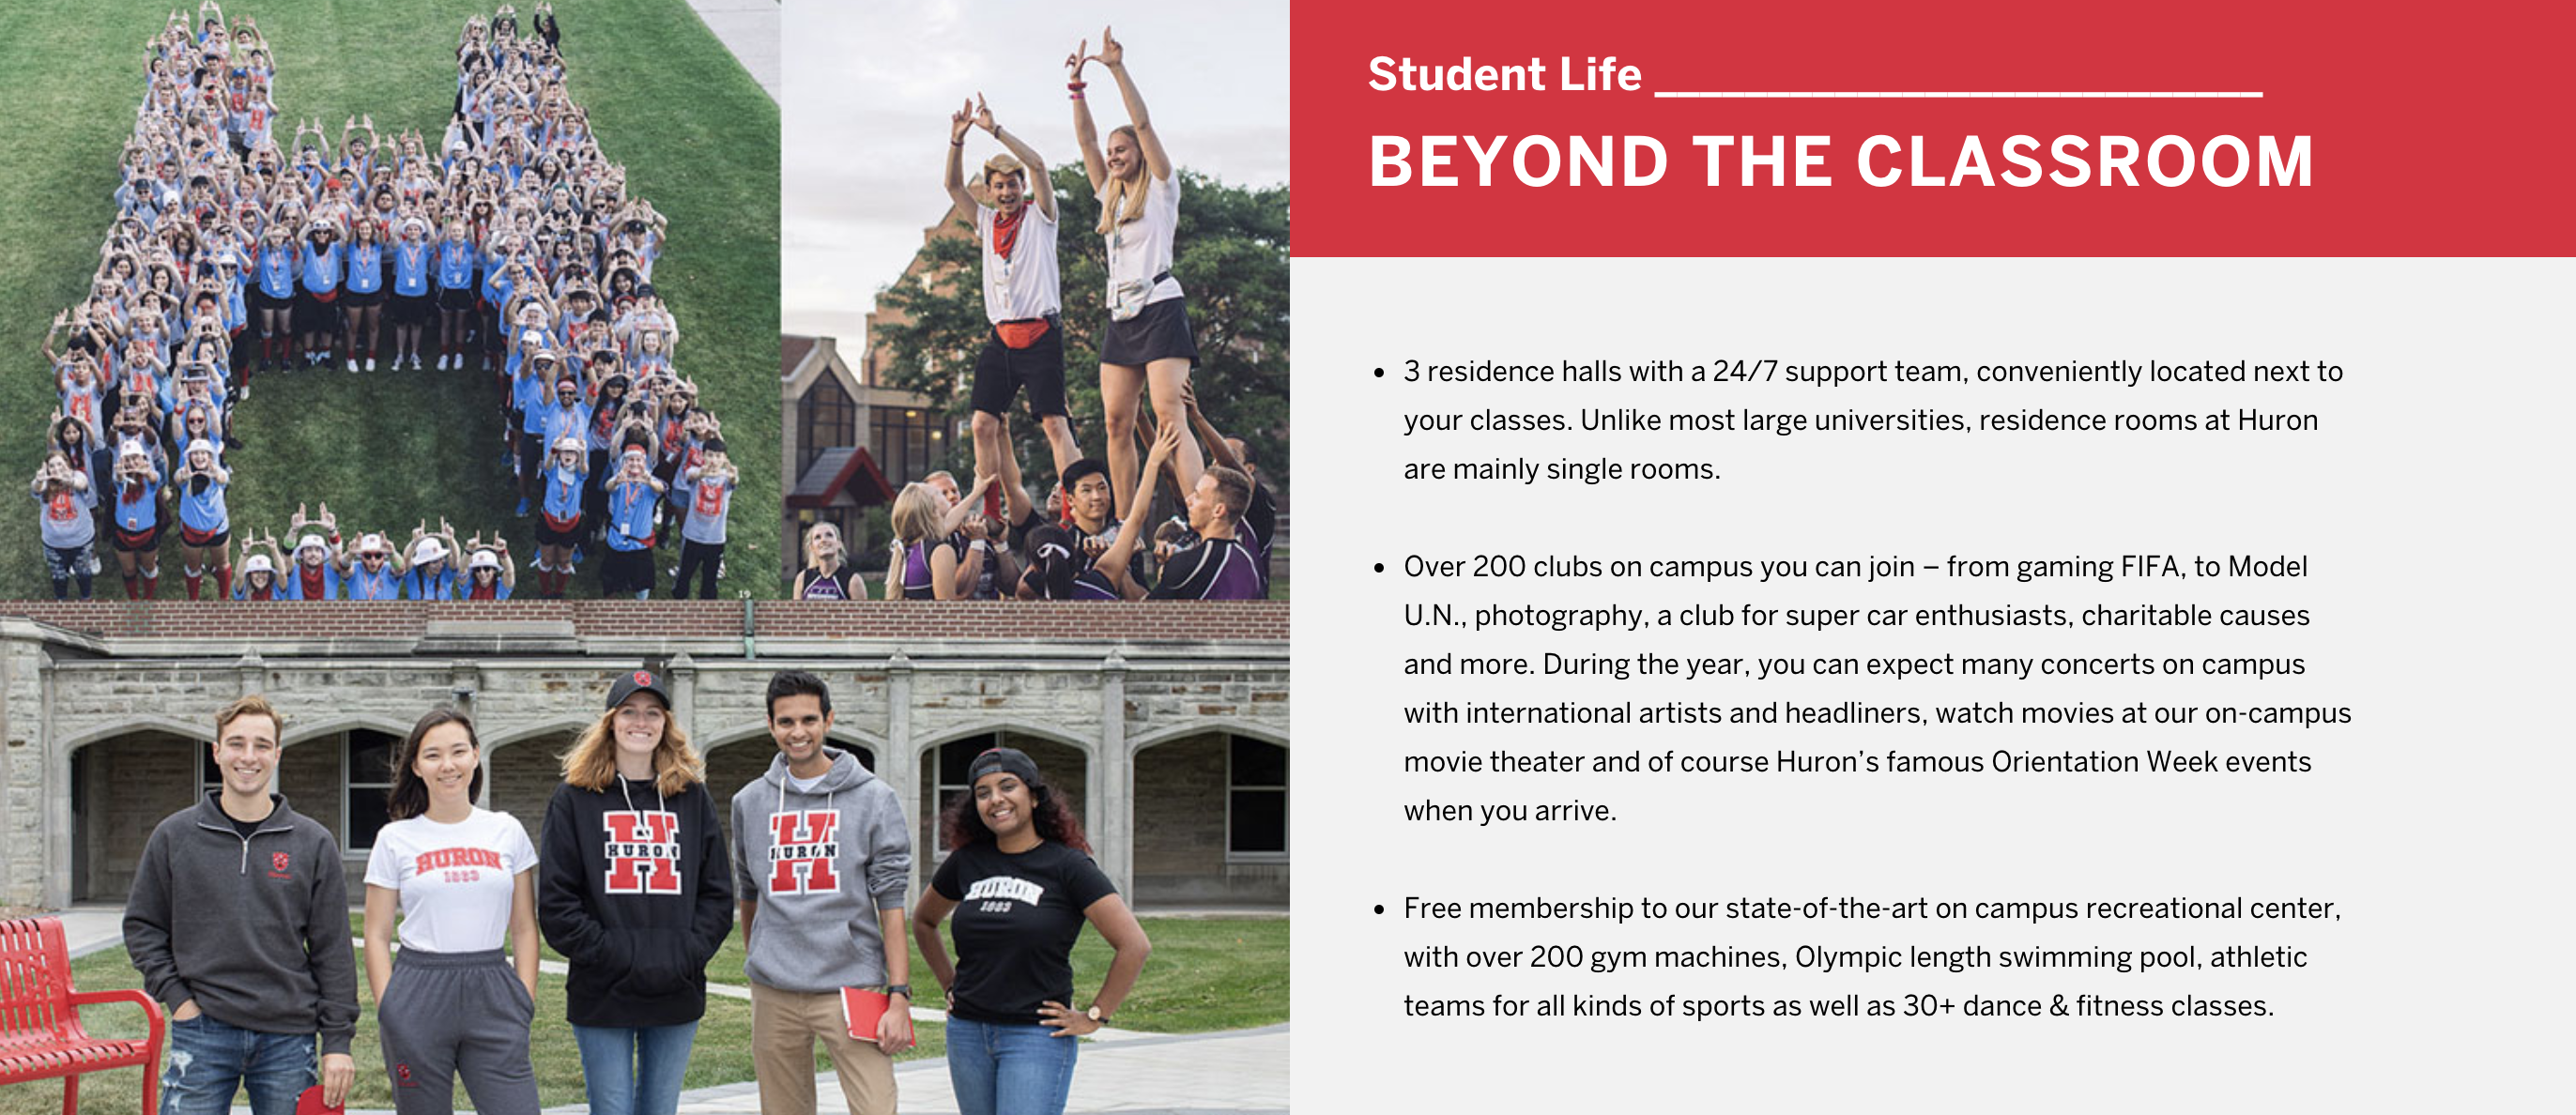 Student Life - Beyond the Classroom